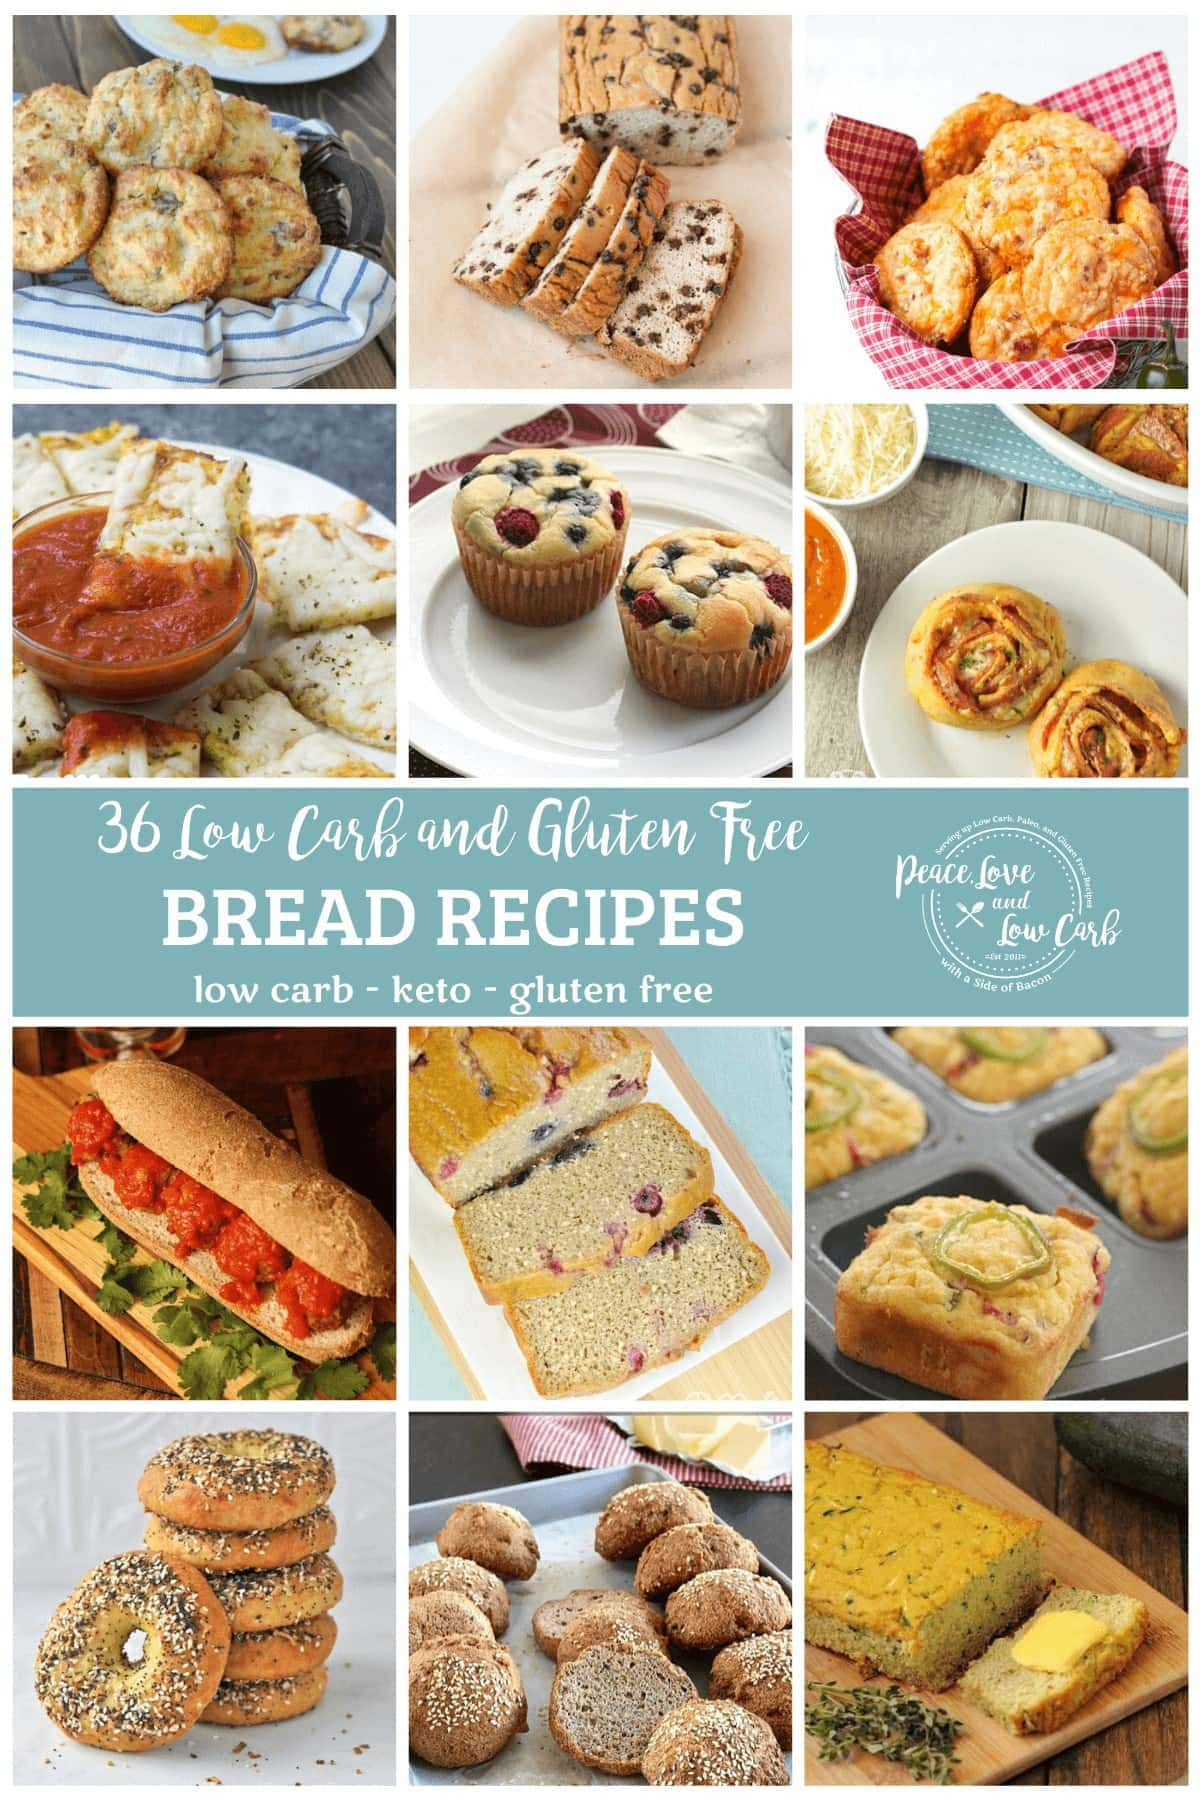 "A collage of 12 different low carb bread recipes featured within the post, all centered within an individual square, with a light teal banner across the middle of the image. The title of the post is written in script ""36 Low Carb and Gluten Free,"" with ""BREAD RECIPES"" in caps, and ""low carb - keto - gluten free"" on the bottom line of text. To the right on the teal banner is the Peace Love and Low Carb logo."